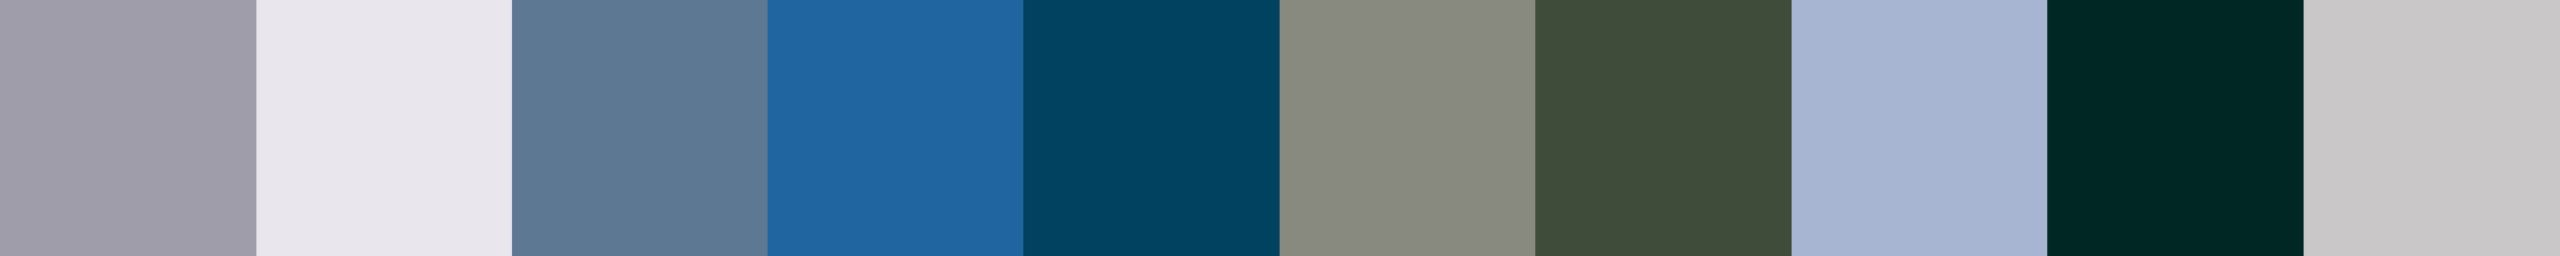 341 Tigomacia Color Palette